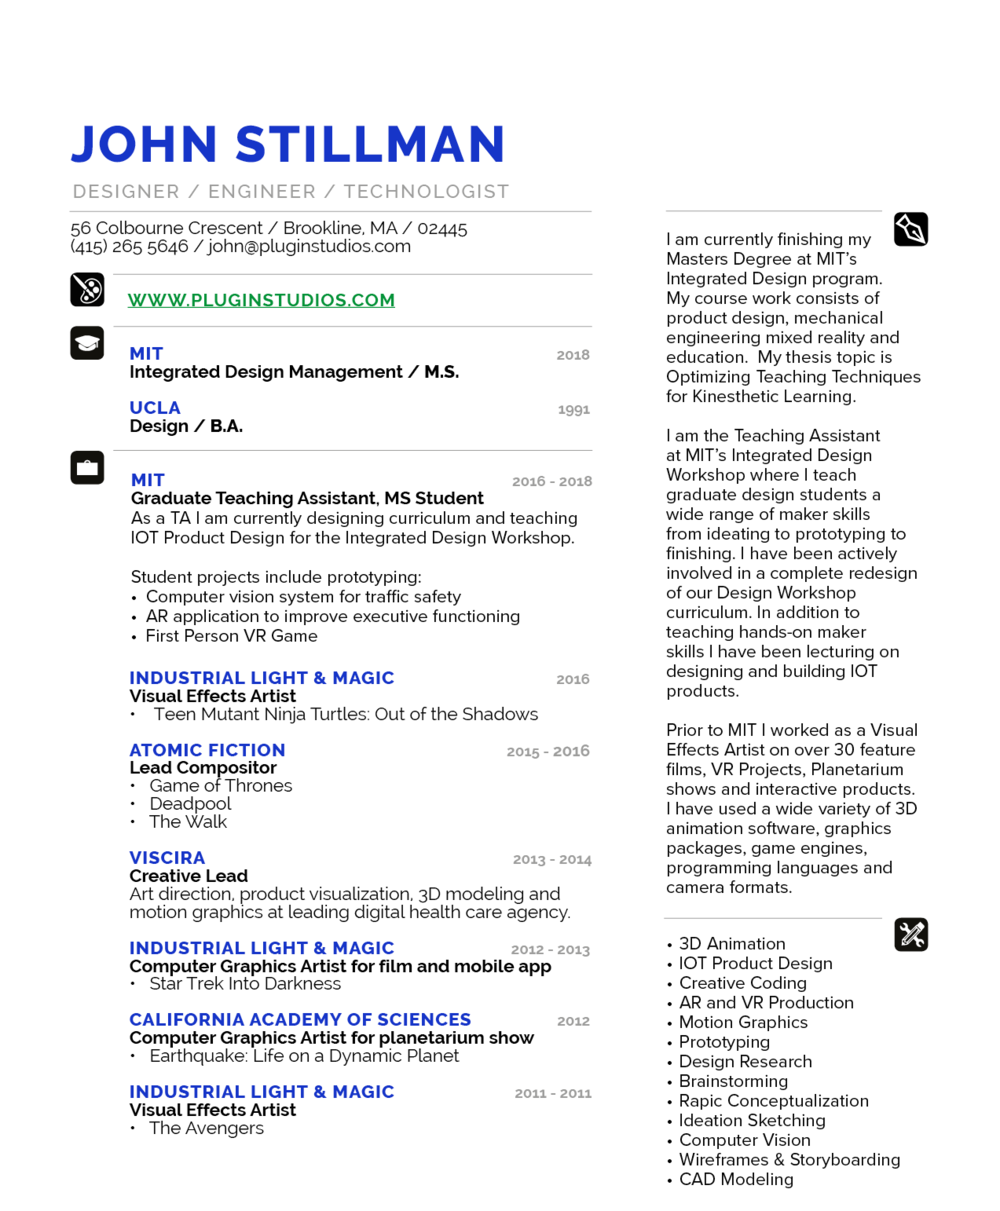 StillmanResume3-28-18.png